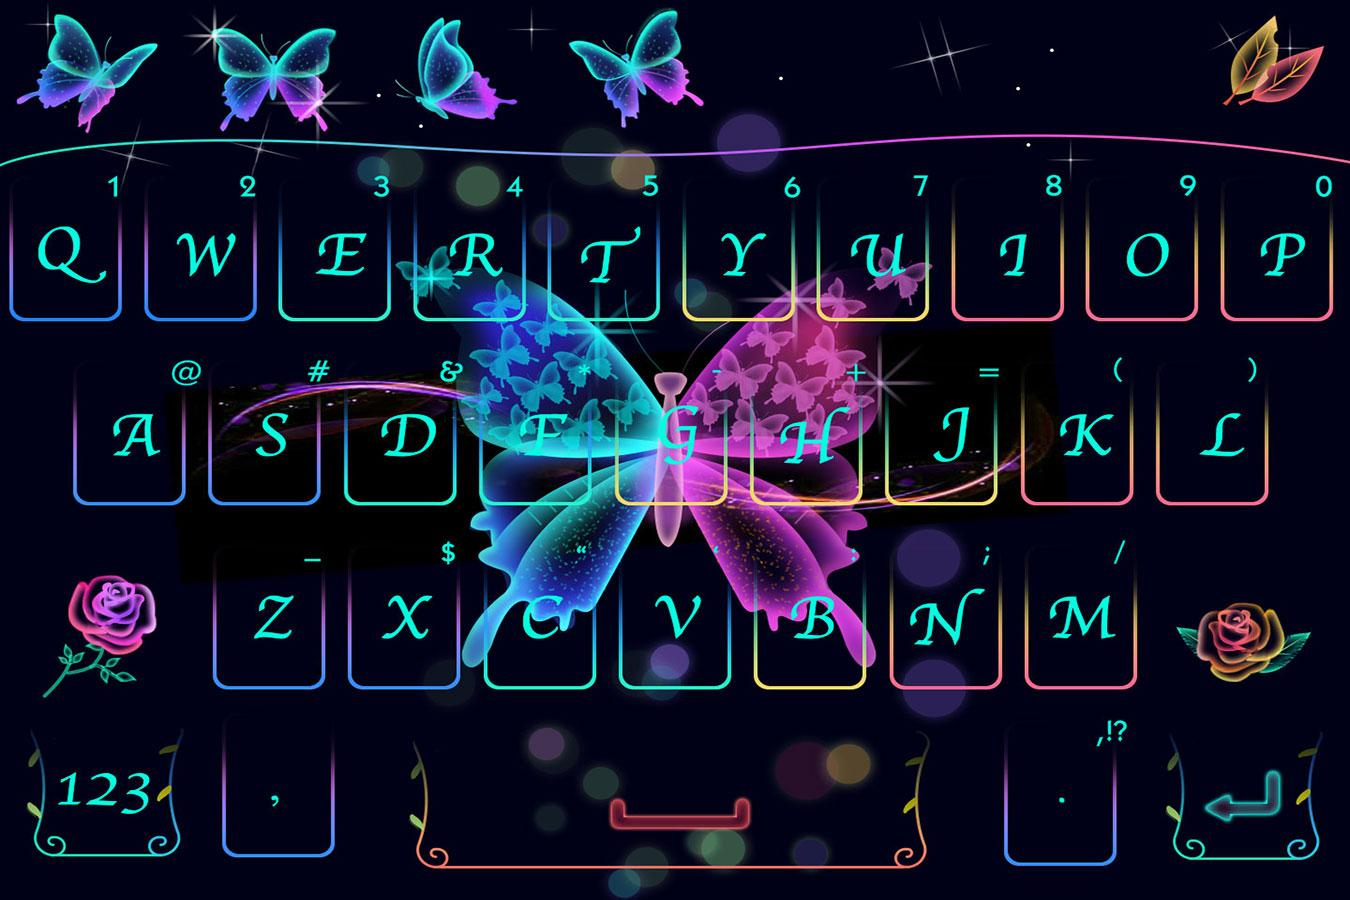 Butterfly keyboard android apps on google play butterfly keyboard screenshot buycottarizona